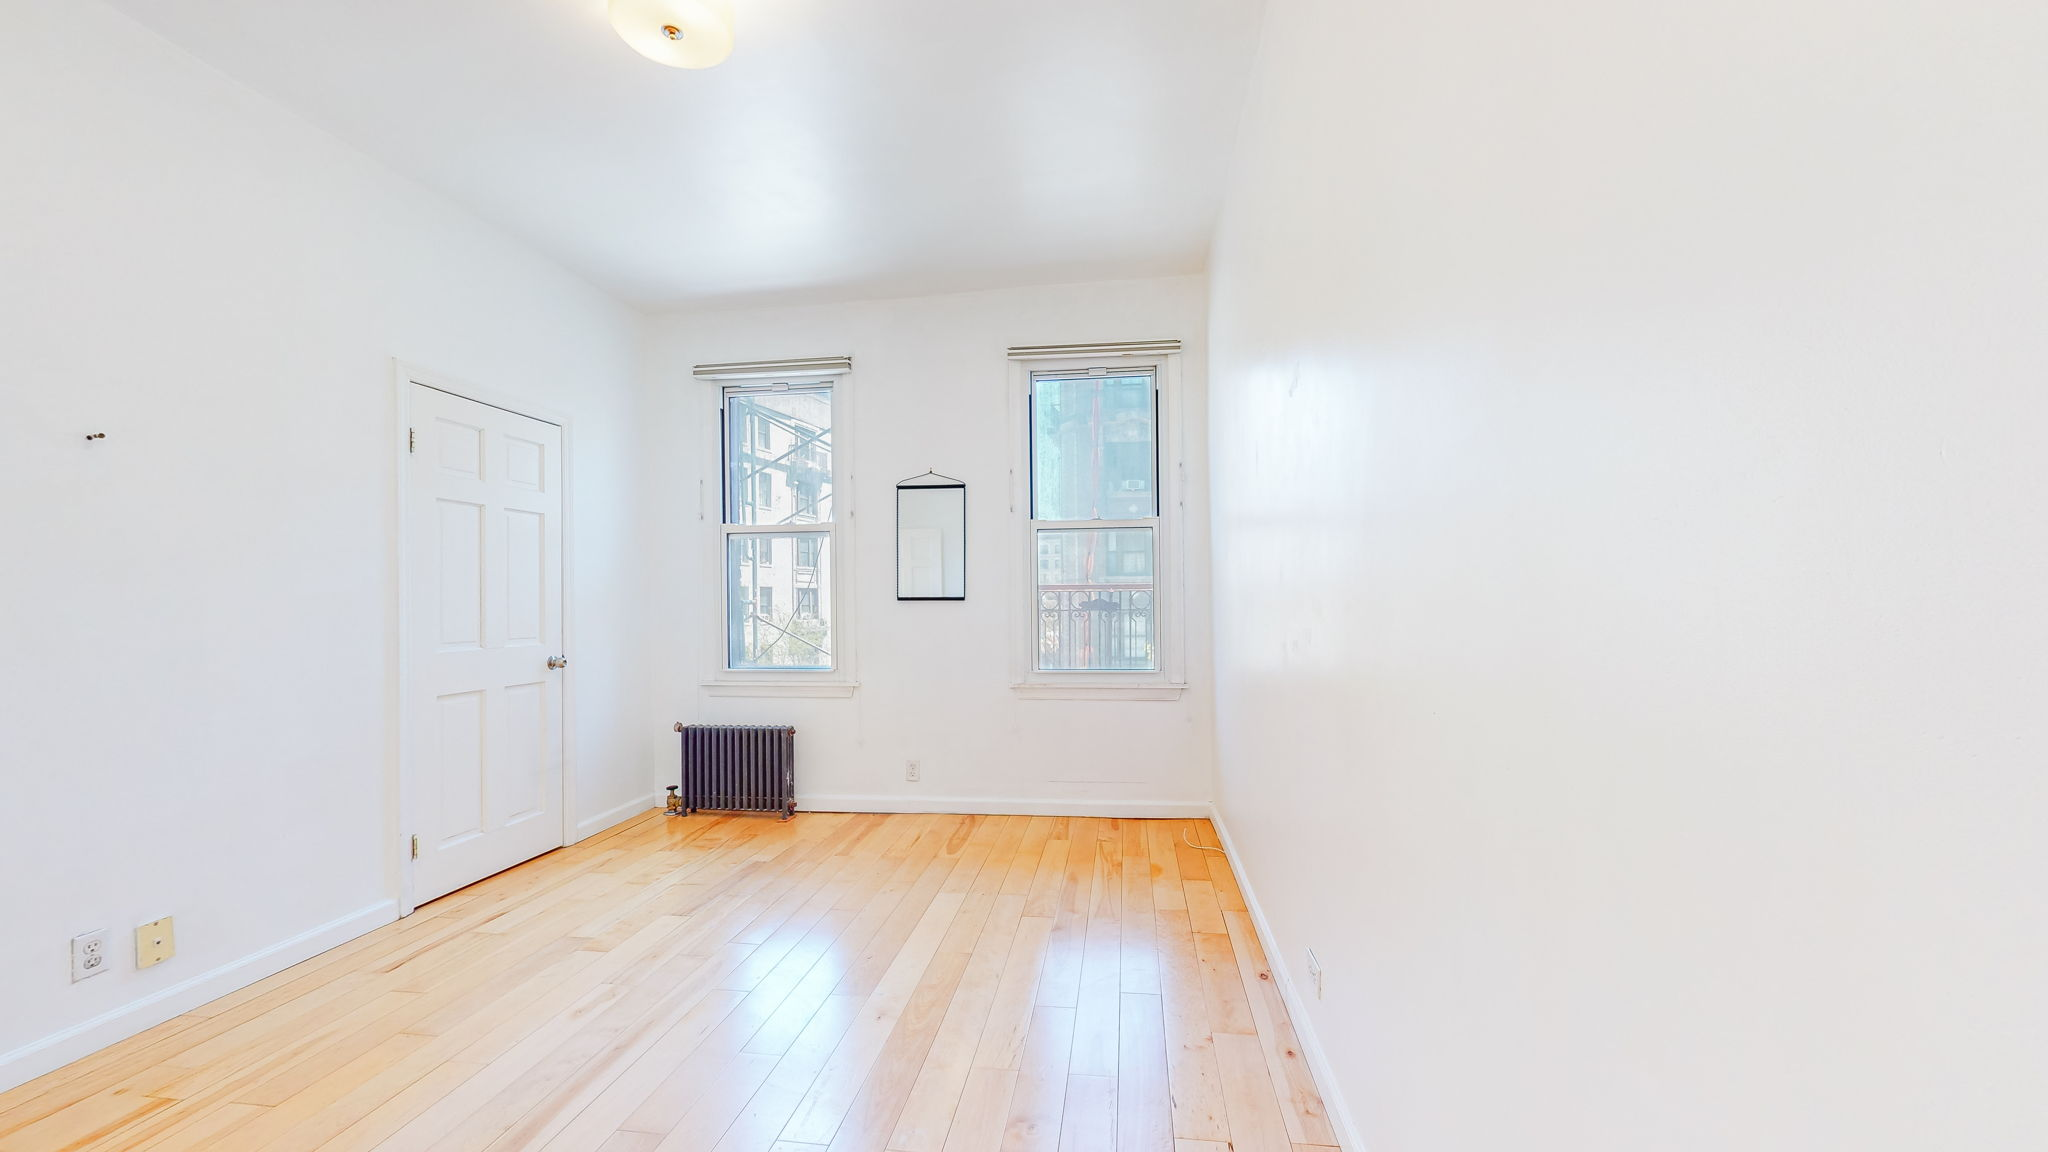 36 Fort Washington, New York, New York, New York, United States 10032, 3 Bedrooms Bedrooms, ,2 BathroomsBathrooms,Co-op,FOR SALE,Fort Washington,1160